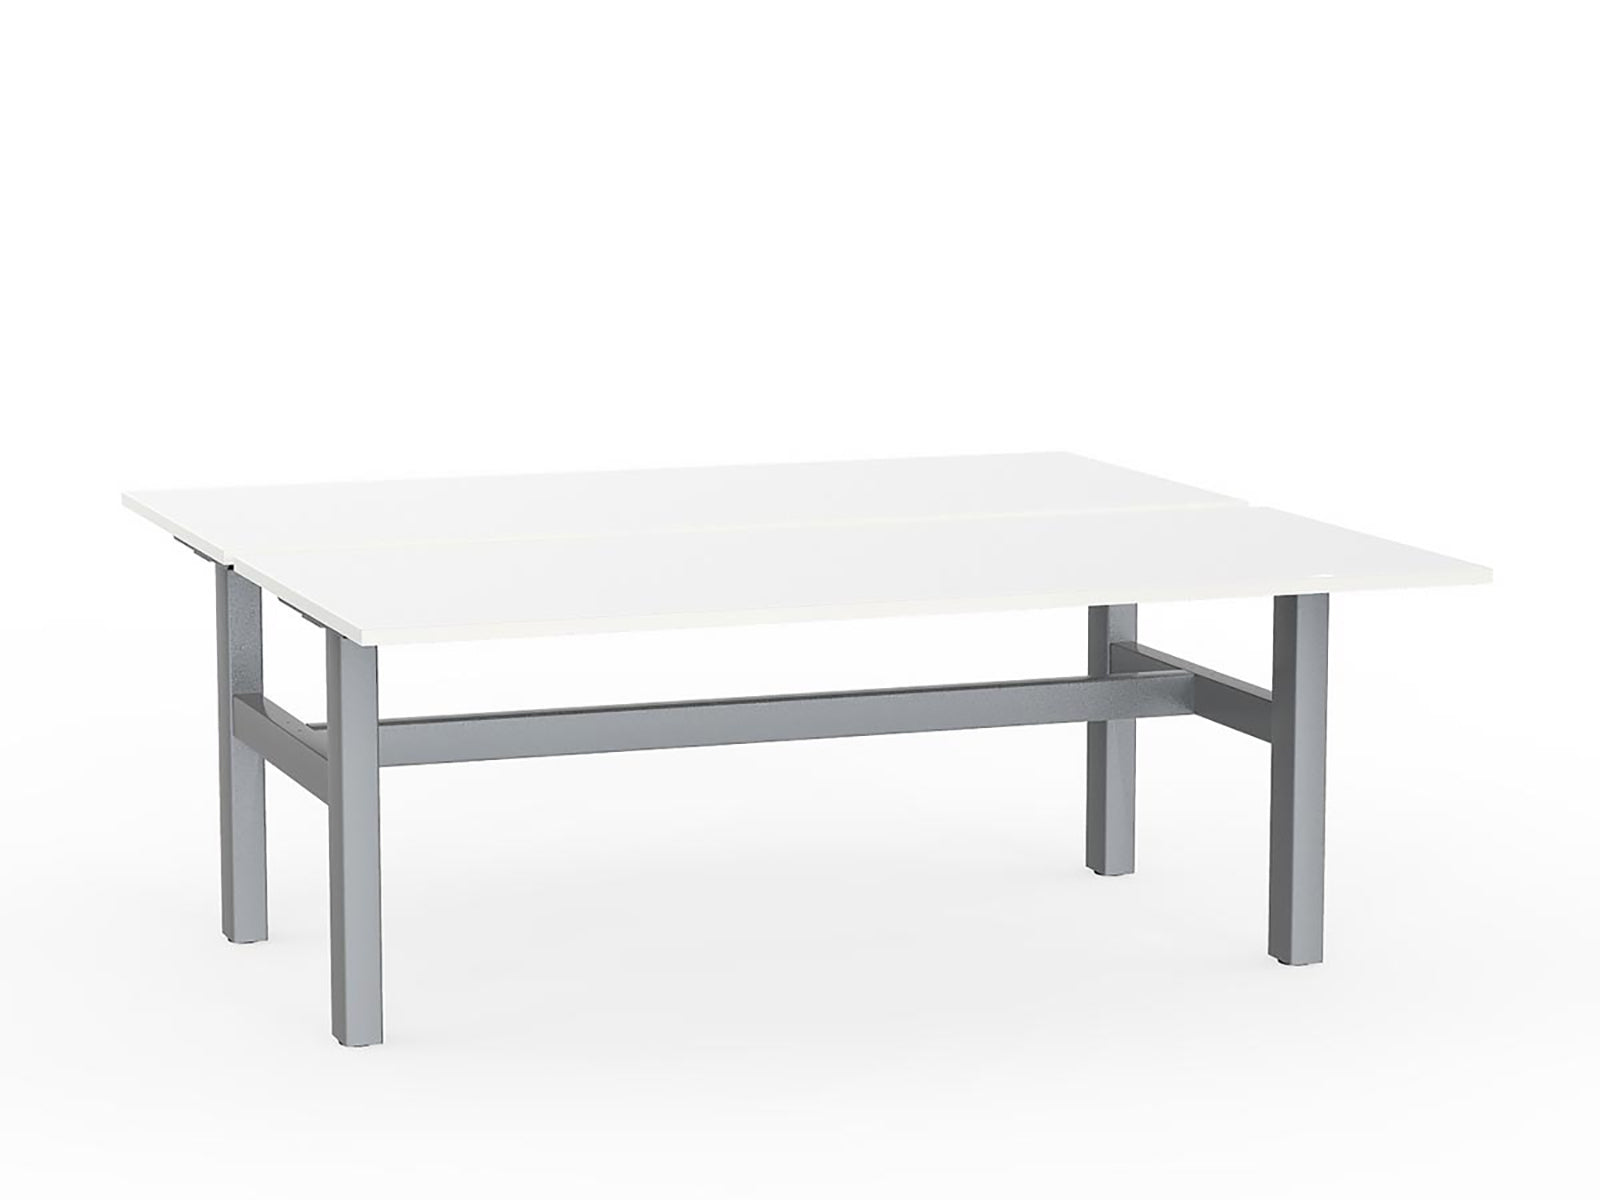 Agile Silver Fixed 1.8m Double Desk